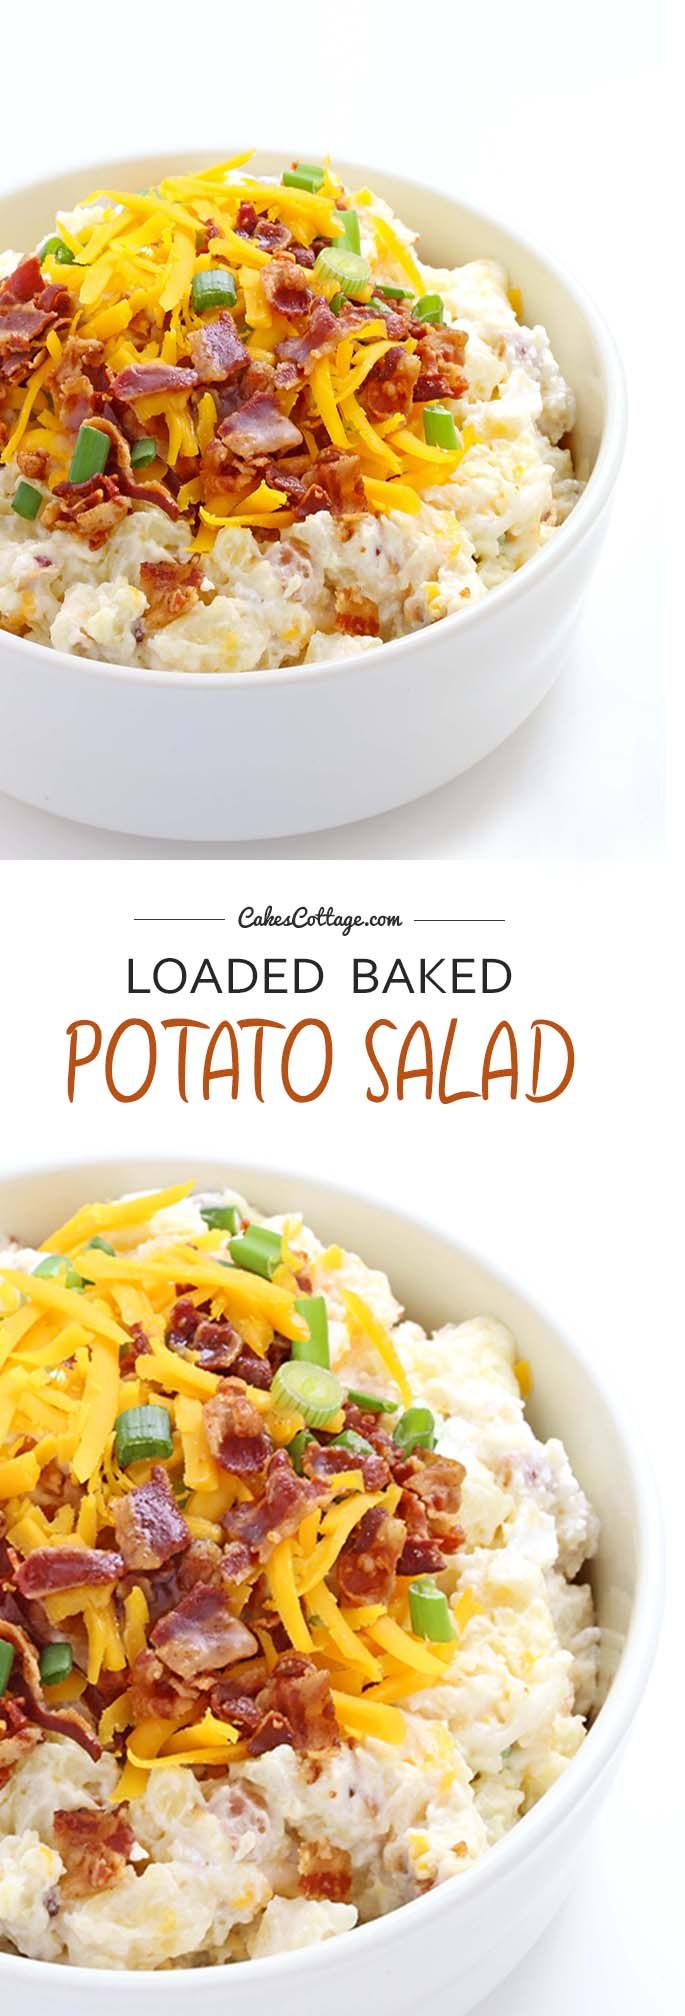 "Loaded Baked Potato Salad – or what I like to call a ""ultimate summer BBQ salad.""  Everything you love about loaded baked potatoes - tender cubes of potato, sour cream, mayo, crispy bacon, Cheddar cheese, and green onions- to create the most amazing summer salad ever!"